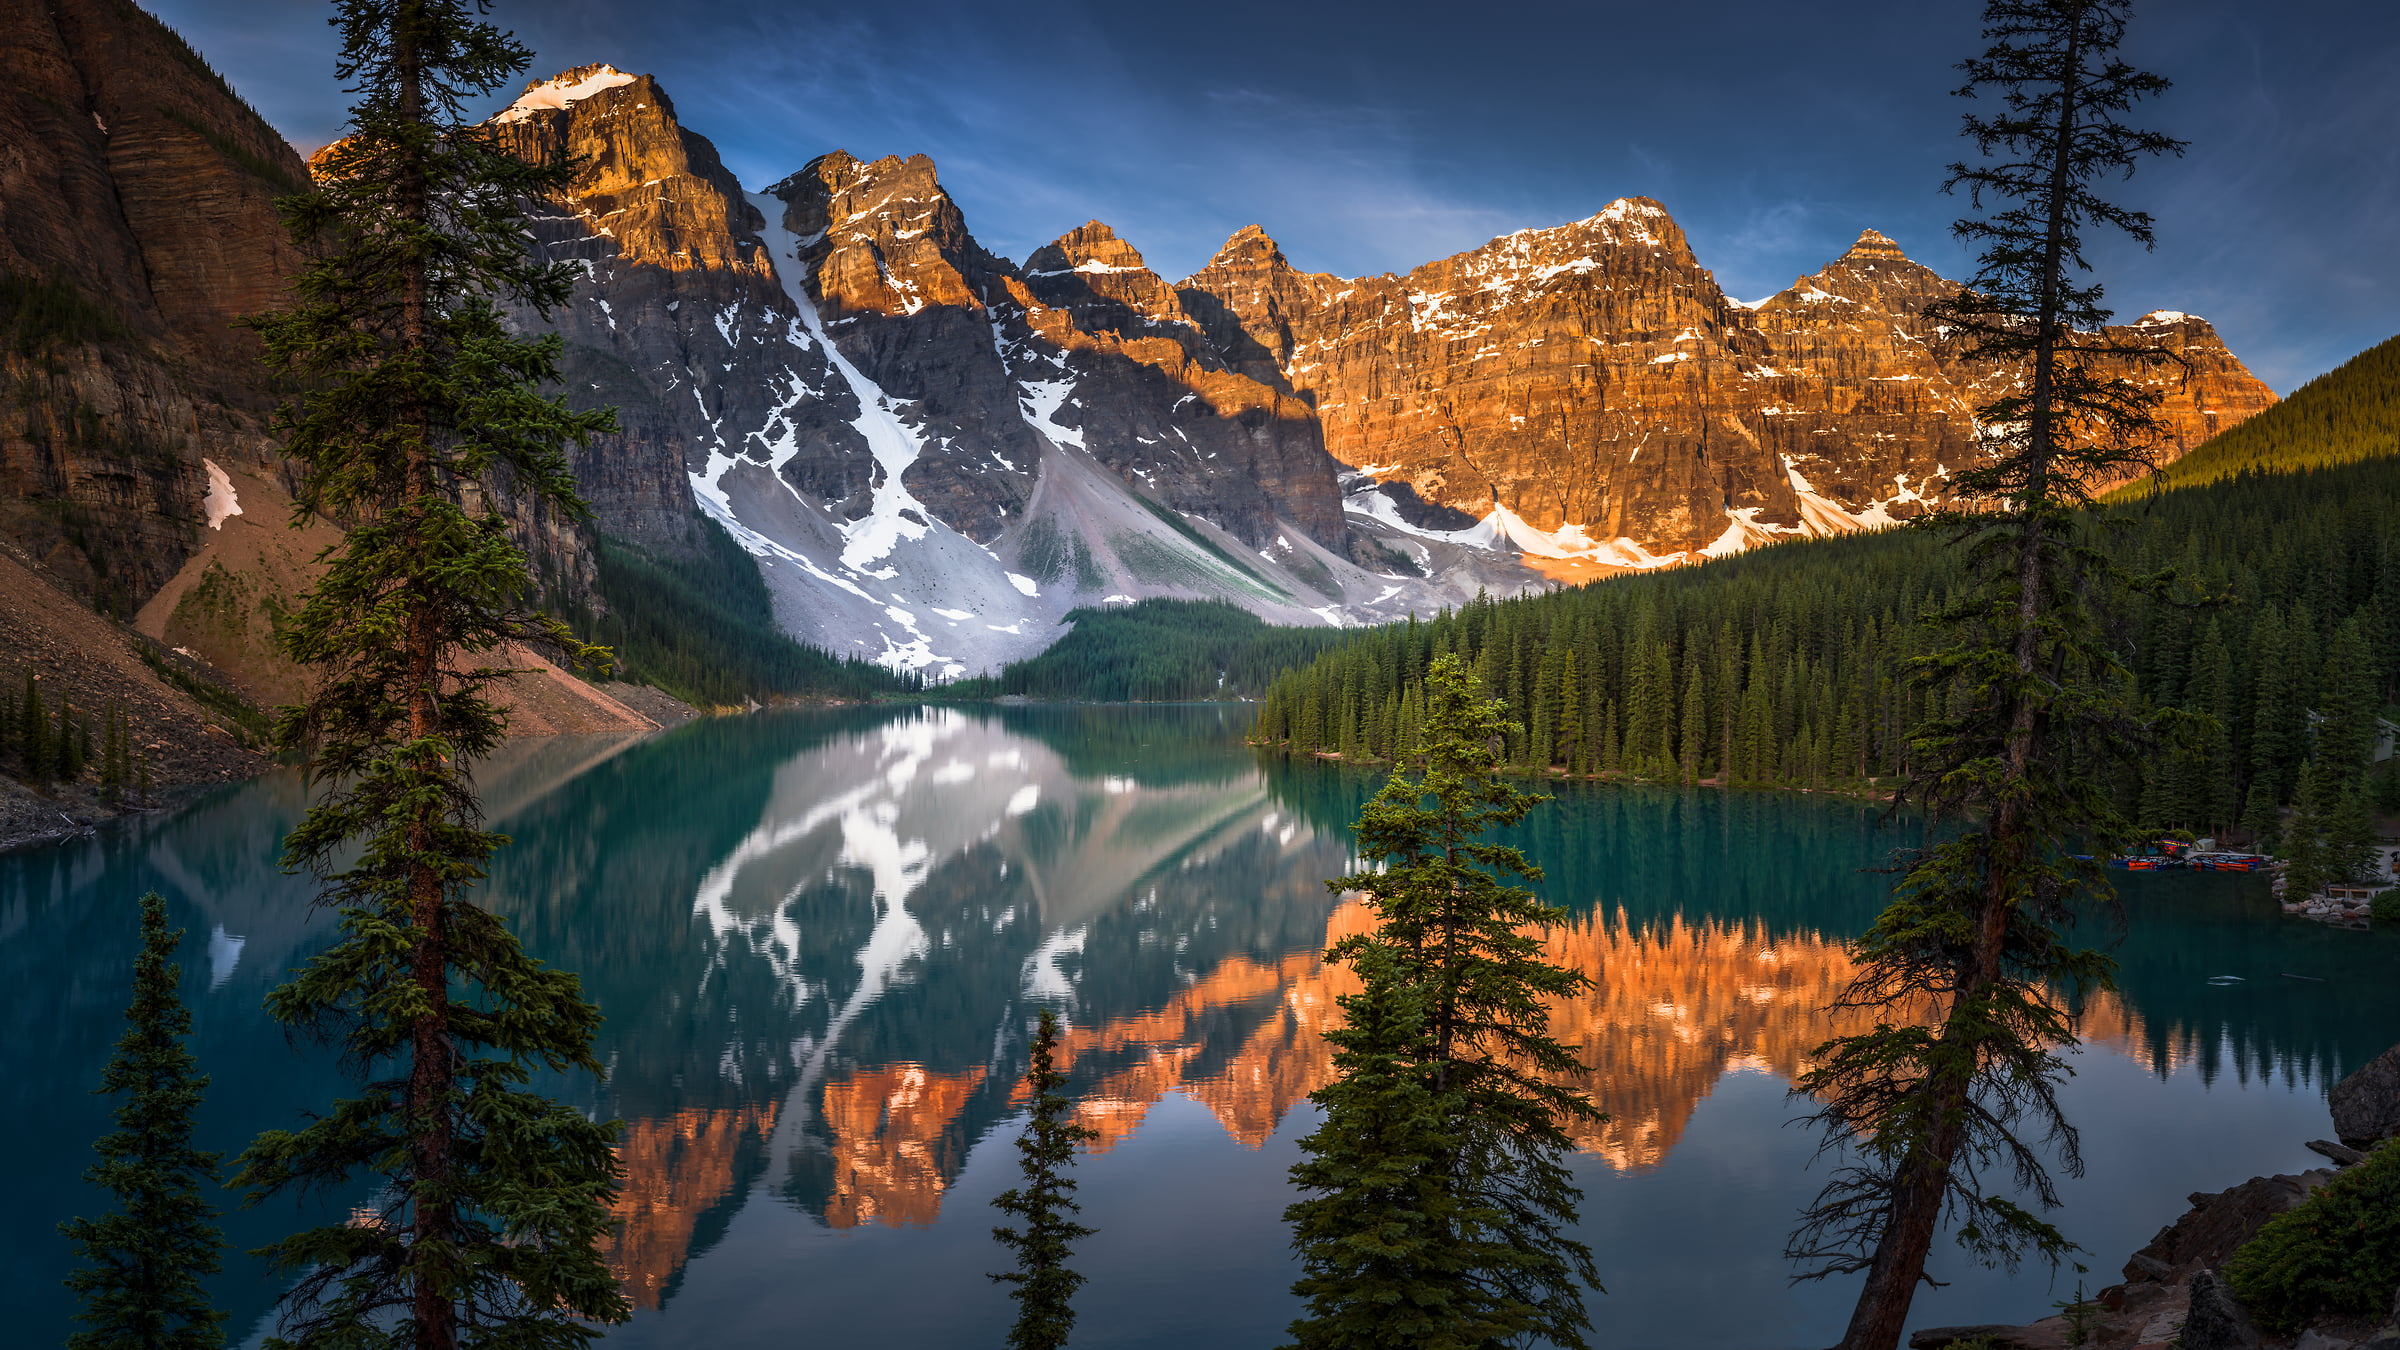 360 megapixels! A very high resolution, large-format VAST photo print of Moraine Lake with trees in the foreground, the lake in the middle and mountains in the background; landscape photograph created by Tim Shields in Moraine Lake, Banff National Park, Canada